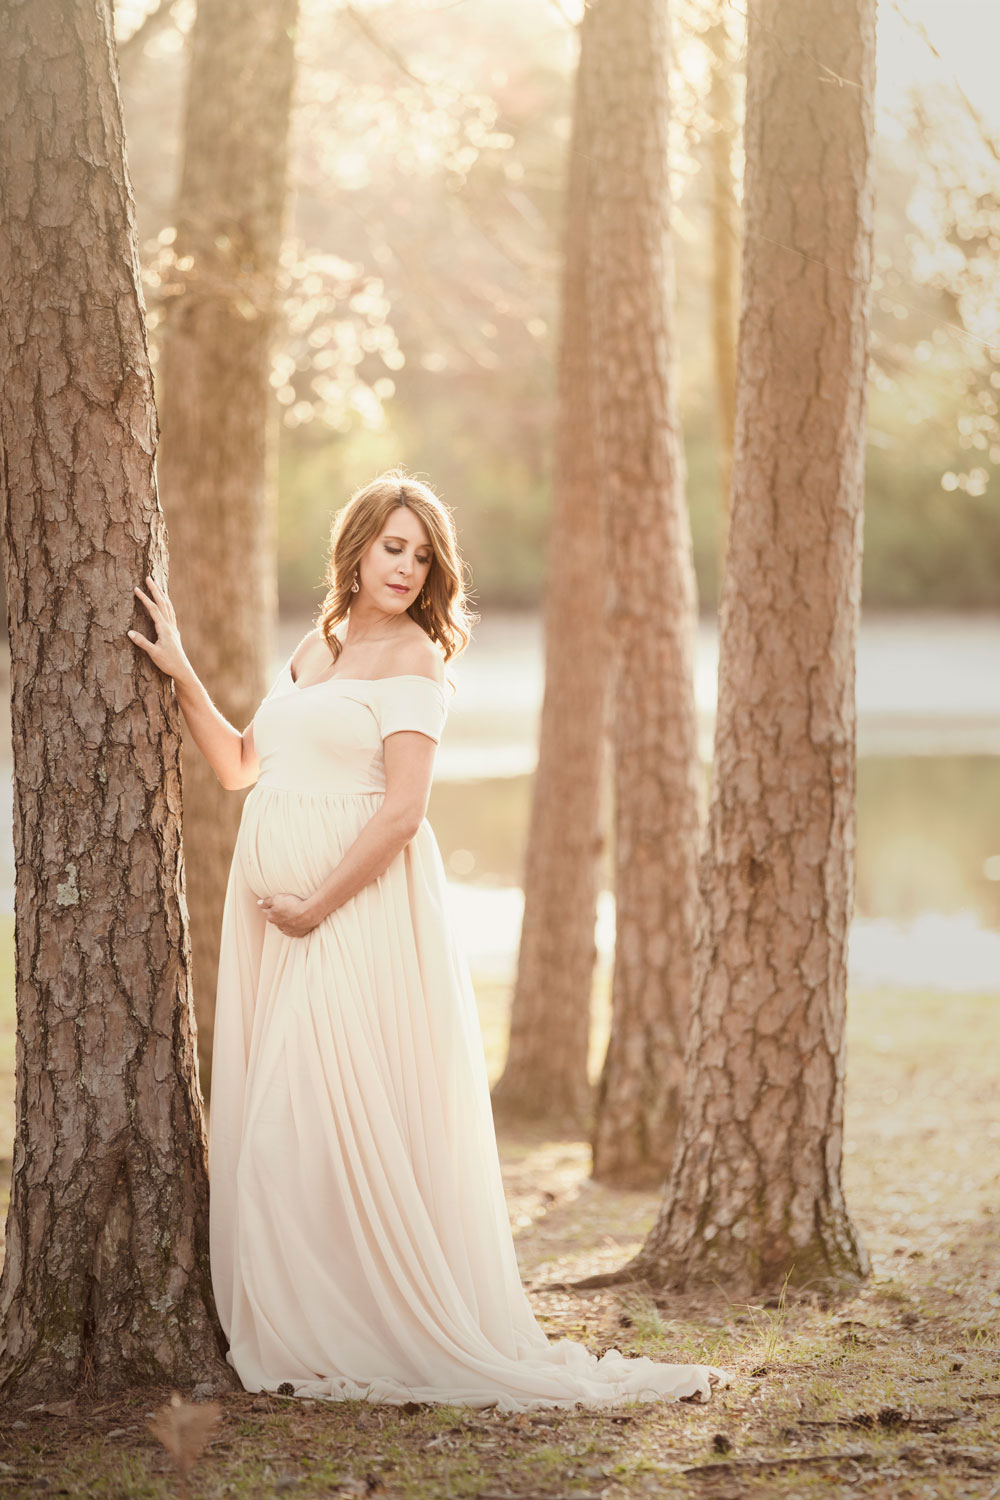 Knoxville mom posing in grove of trees for maternity picture